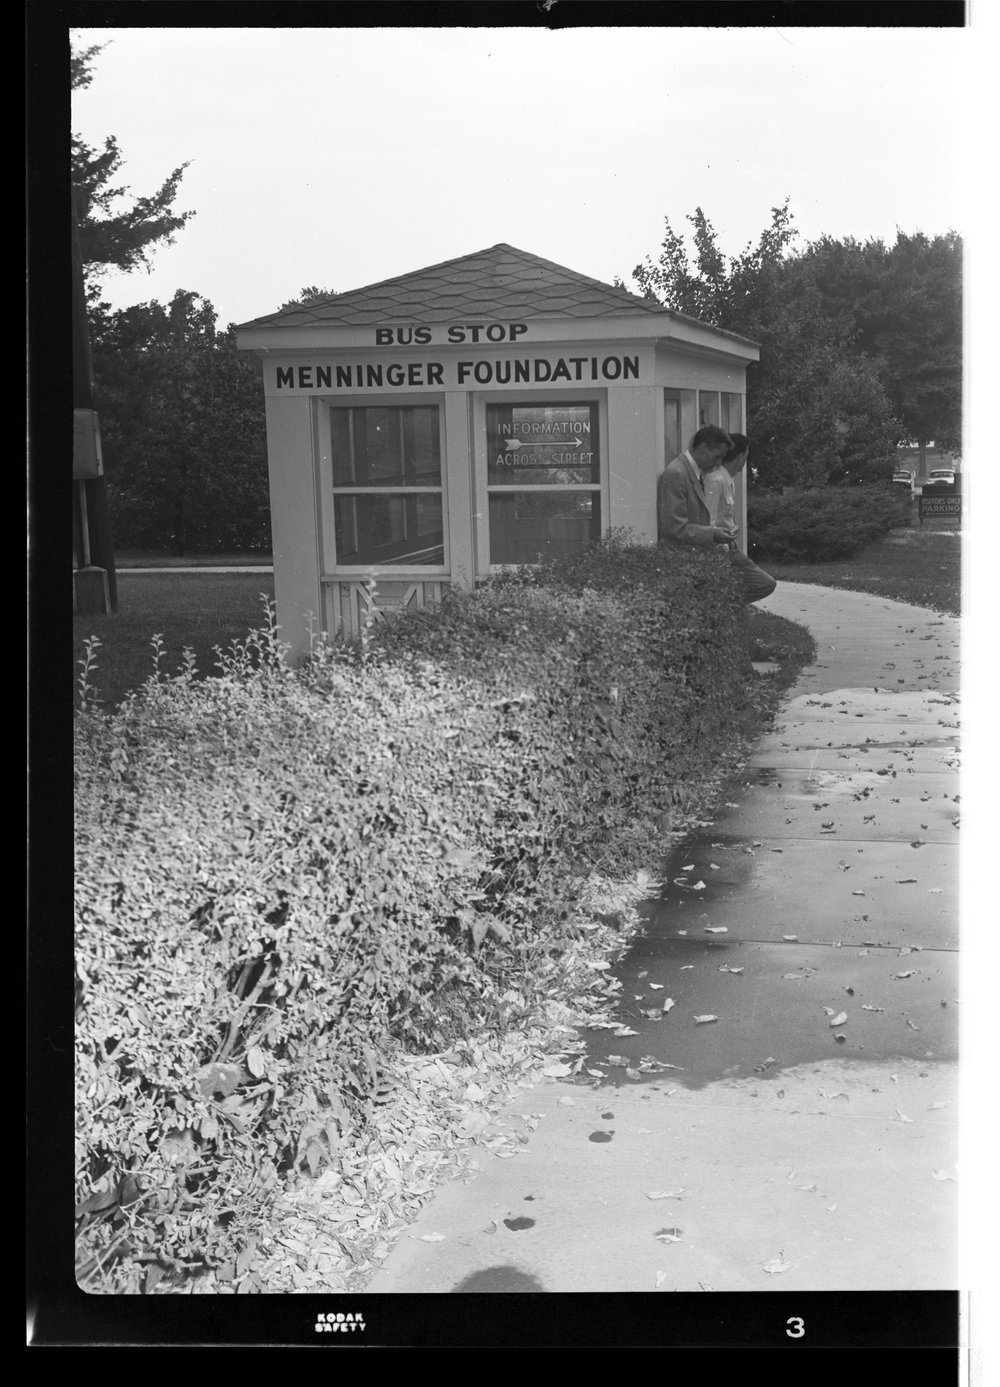 Menninger Foundation bus stop shelter in Topeka, Kansas - 1